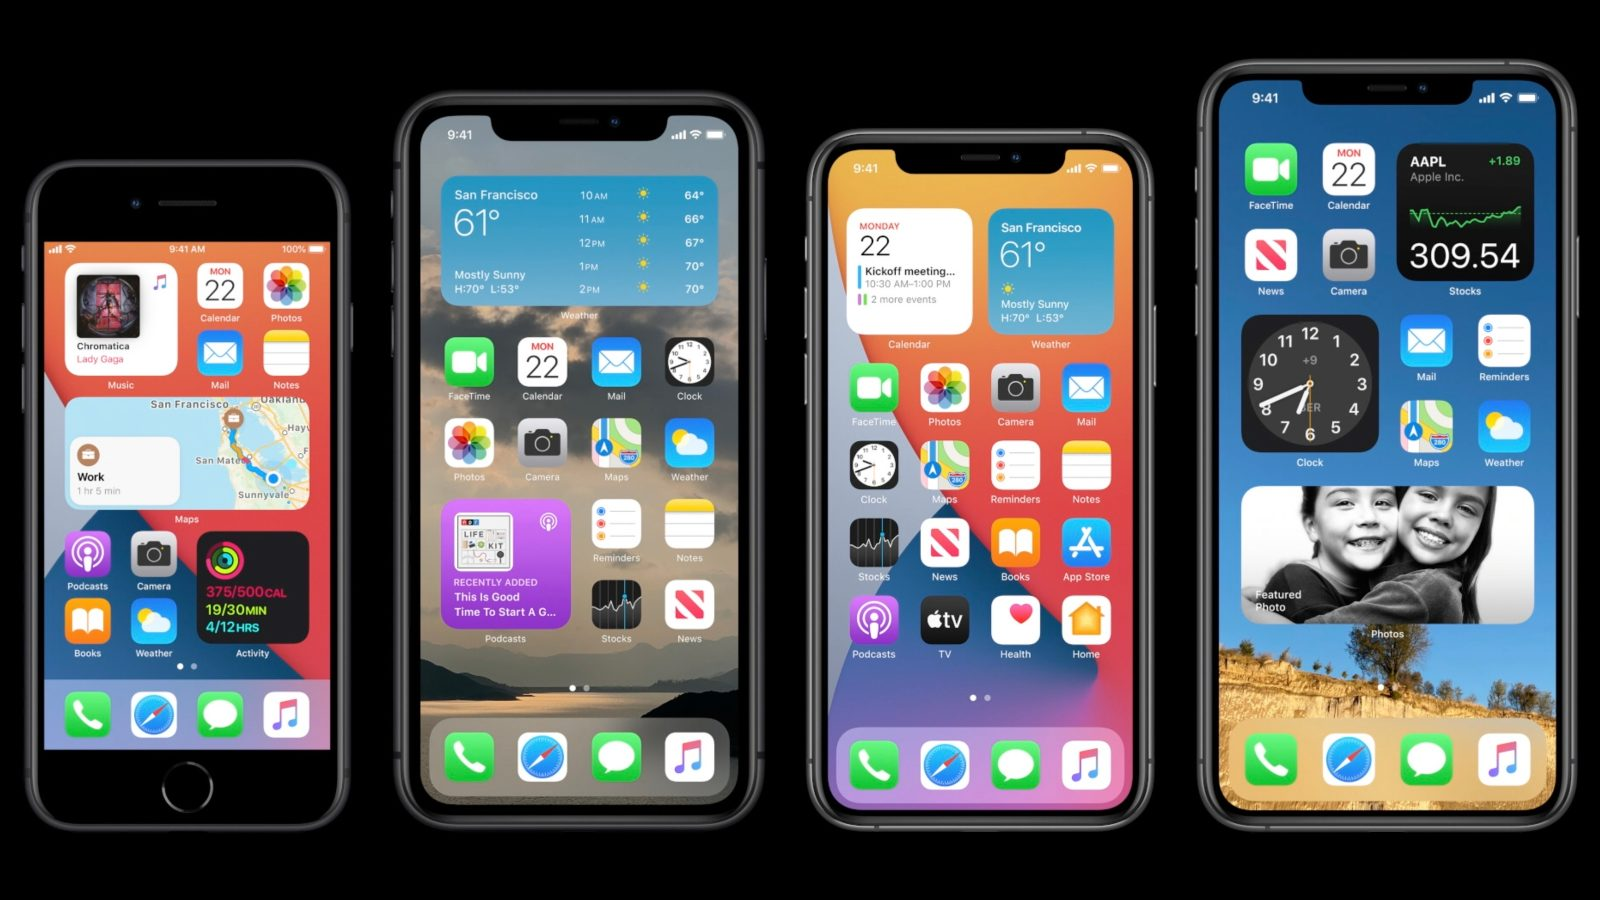 Apple Unveils Ios 14 With New Home Screen Design Widgets Picture In Picture More 9to5mac